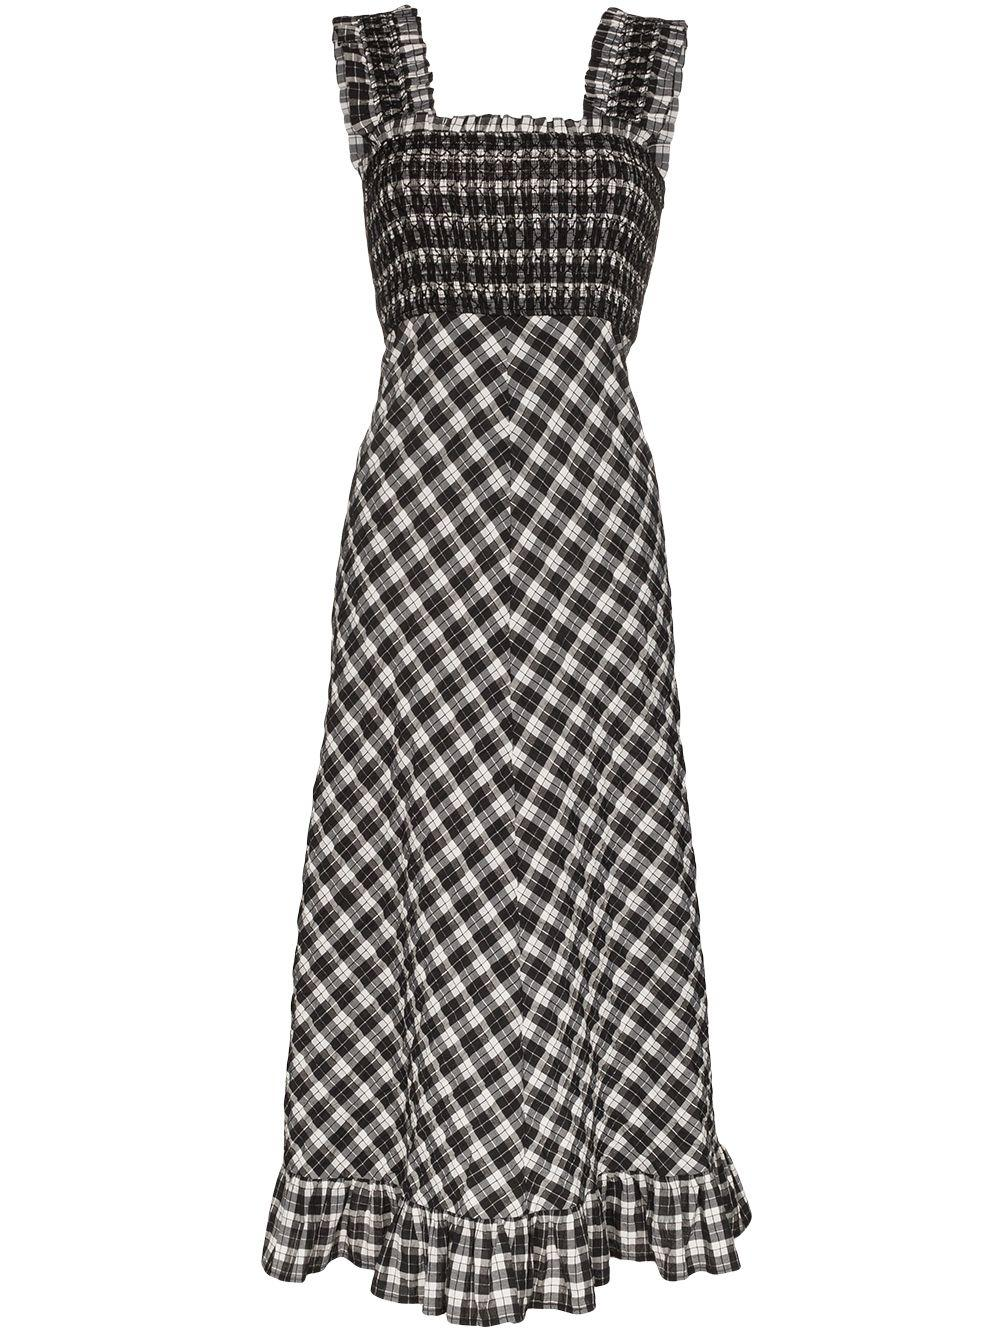 Seersucker Check Smoked Midi Dress